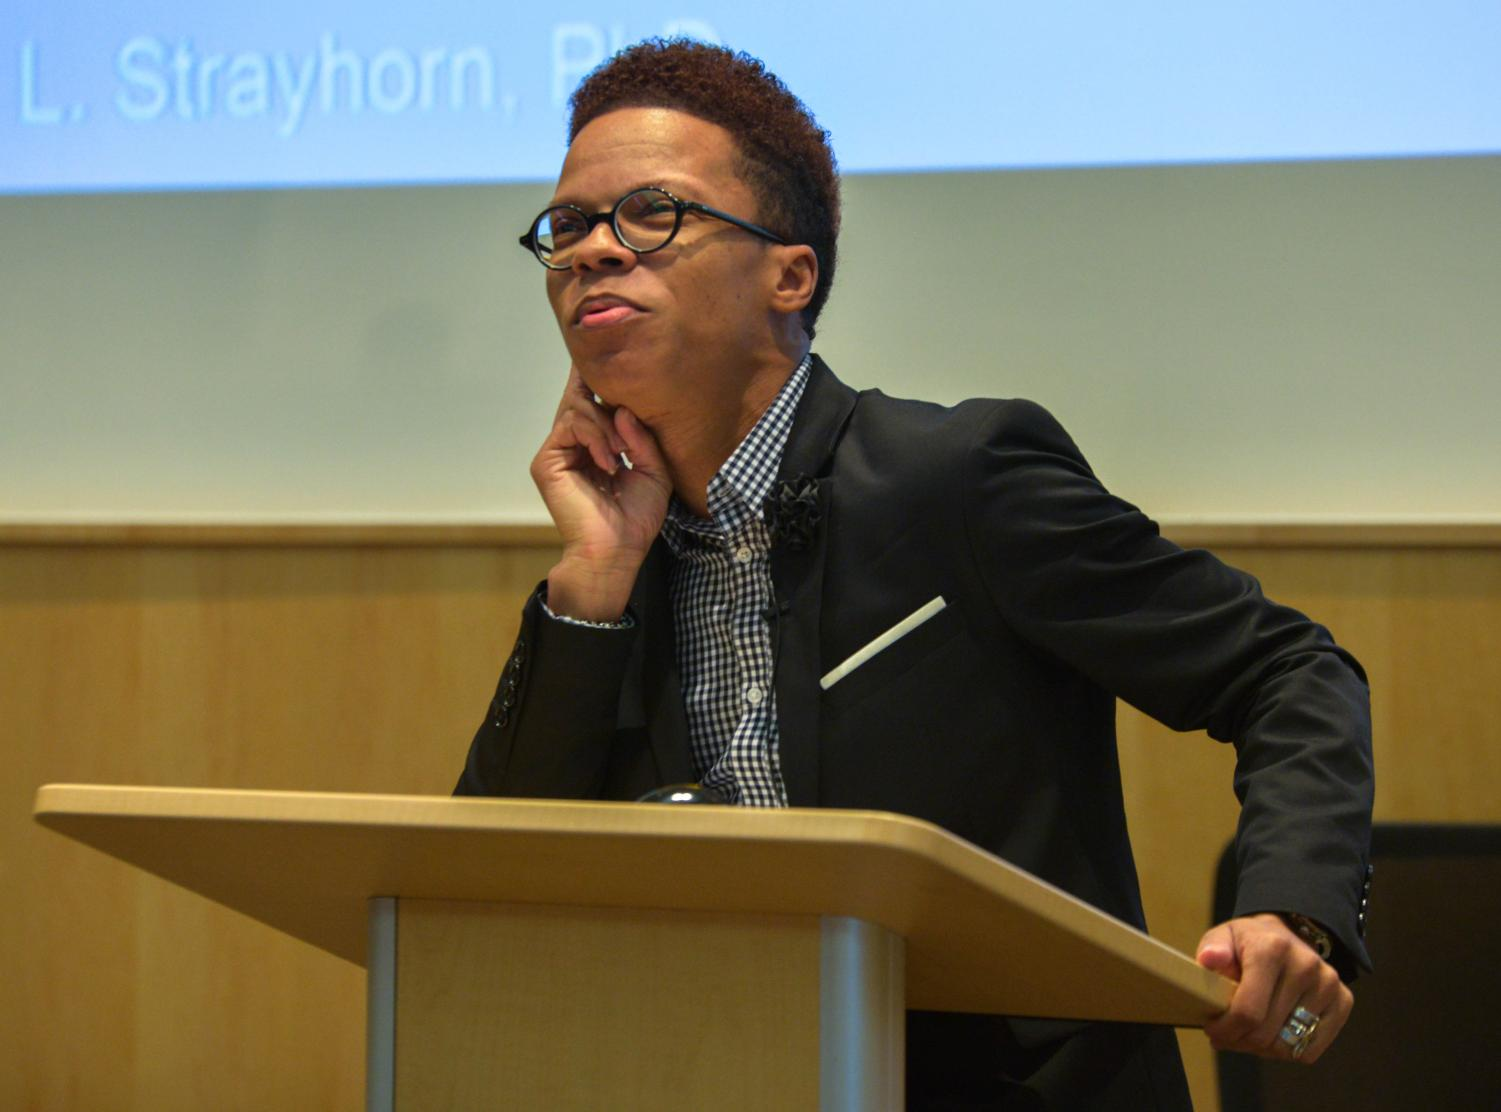 Dr. Terrell Strayhorn visited the University of Wisconsin-Whitewater campus to speak to faculty, staff, and students on promoting campus culture and a sense of belonging for the upcoming years.